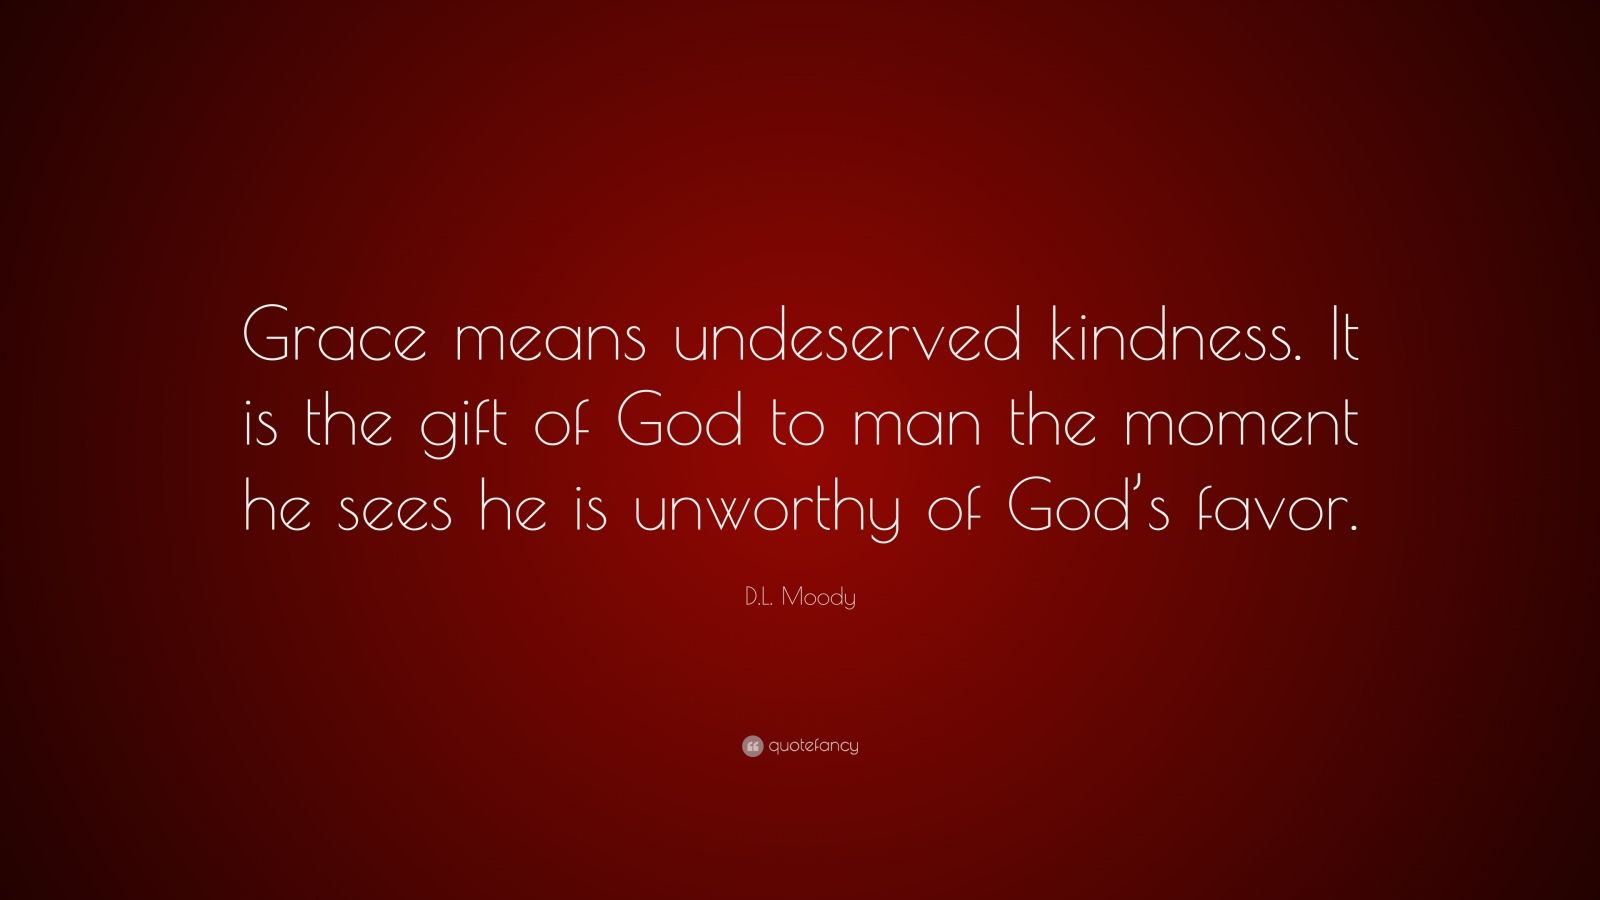 "D.L. Moody Quote: ""Grace means undeserved kindness. It is the gift of God to man the moment he sees he is unworthy of God's favor."""